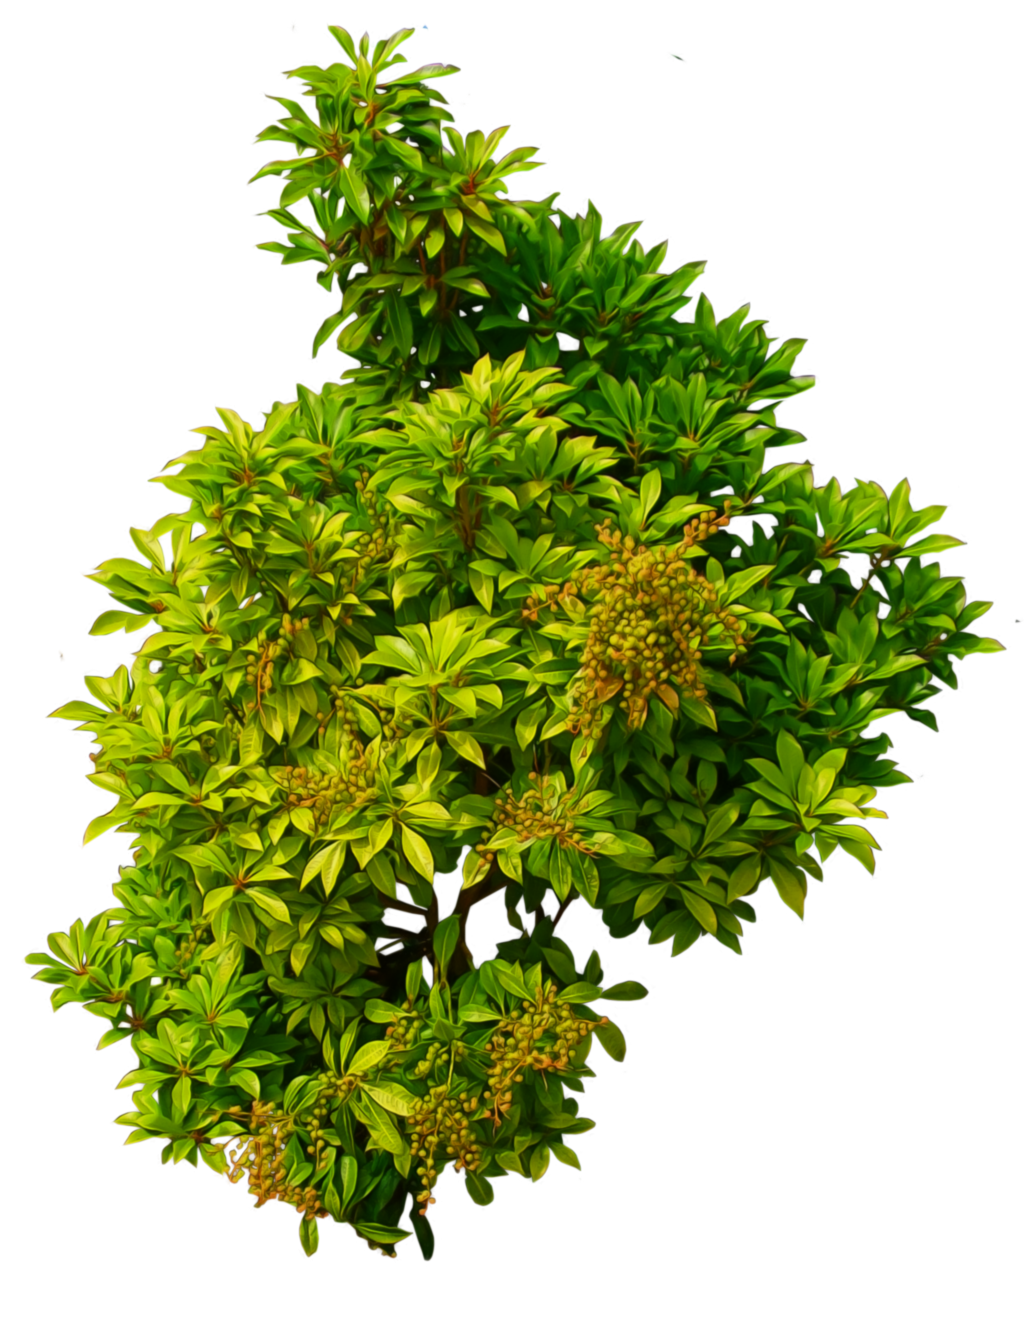 Green plants png. Bushes images free download